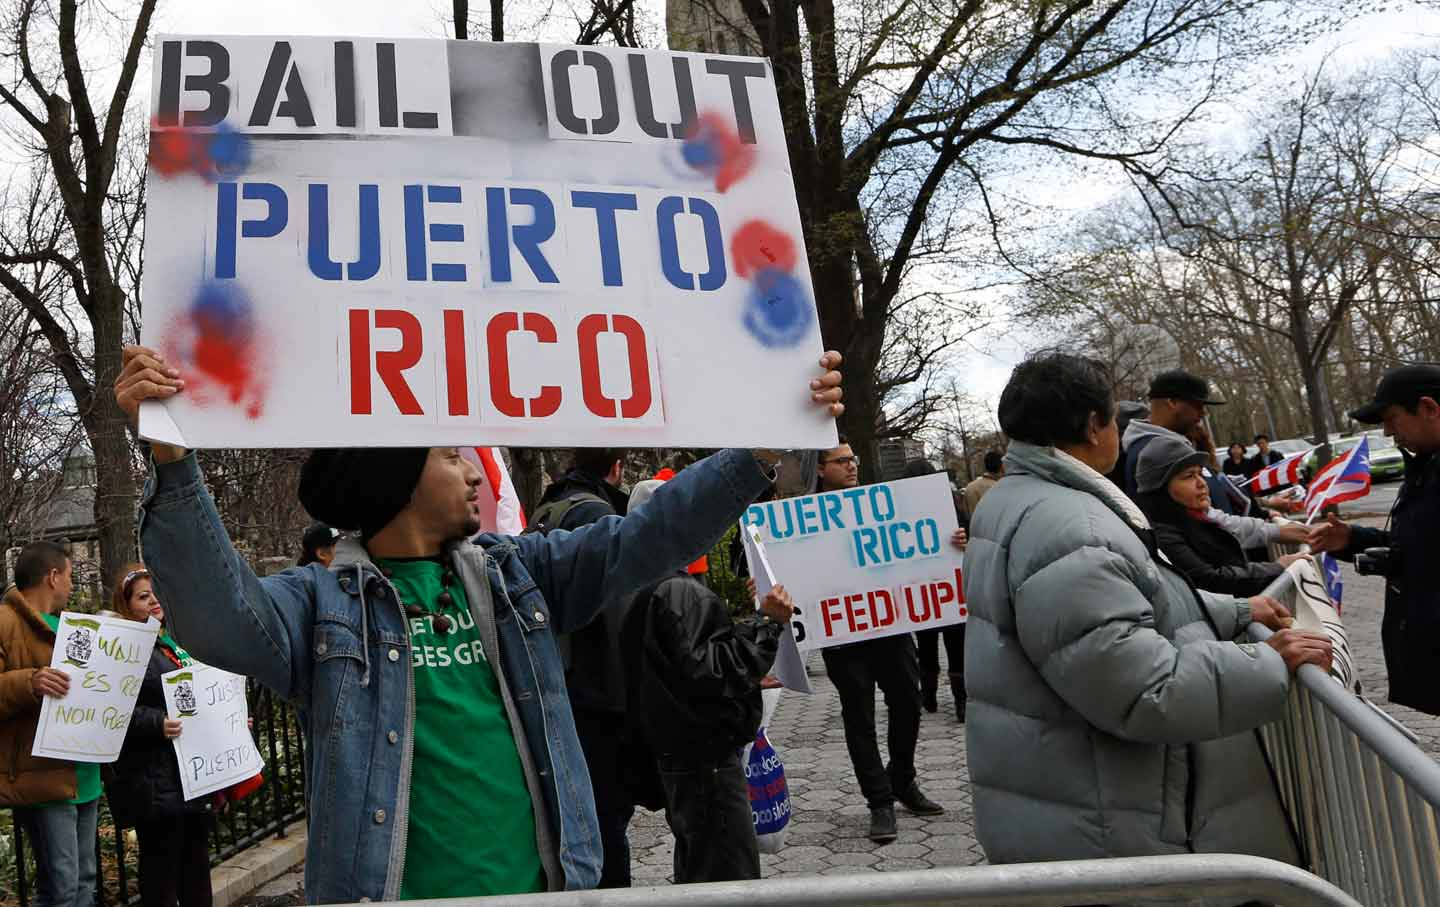 Orwell in Puerto Rico: Congress 'Promises' a New Dictatorship